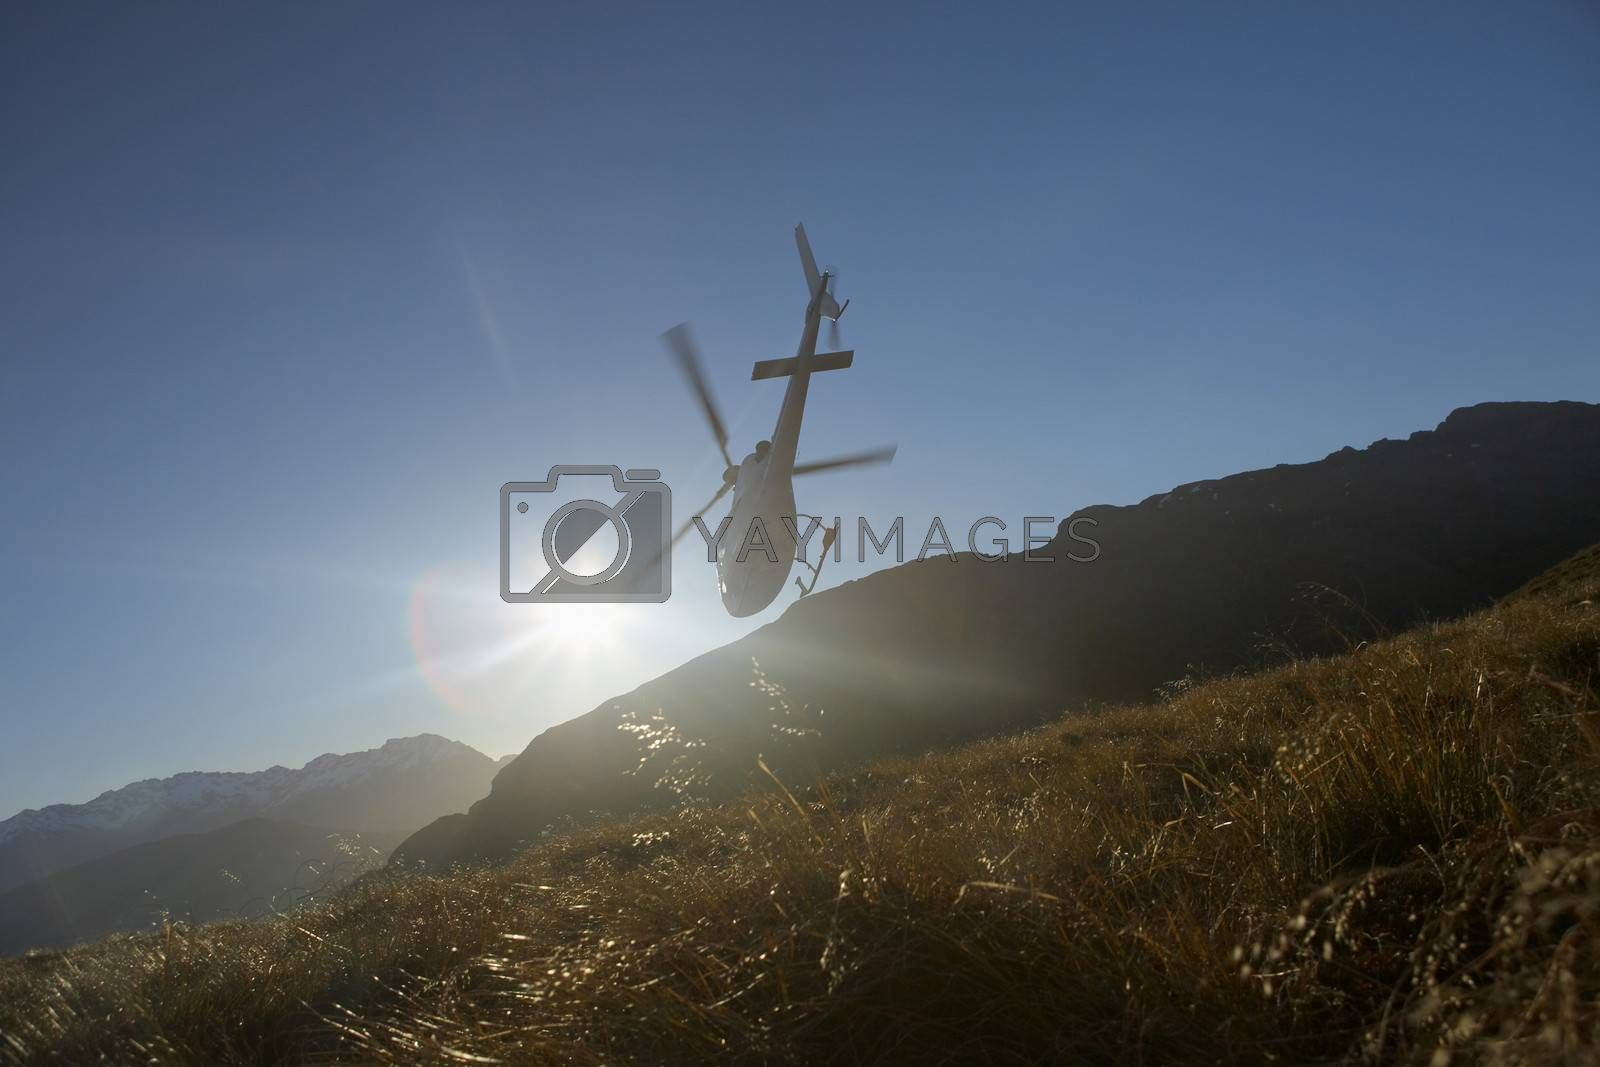 Helicopter Flying Over Hills In Front Of The Sun